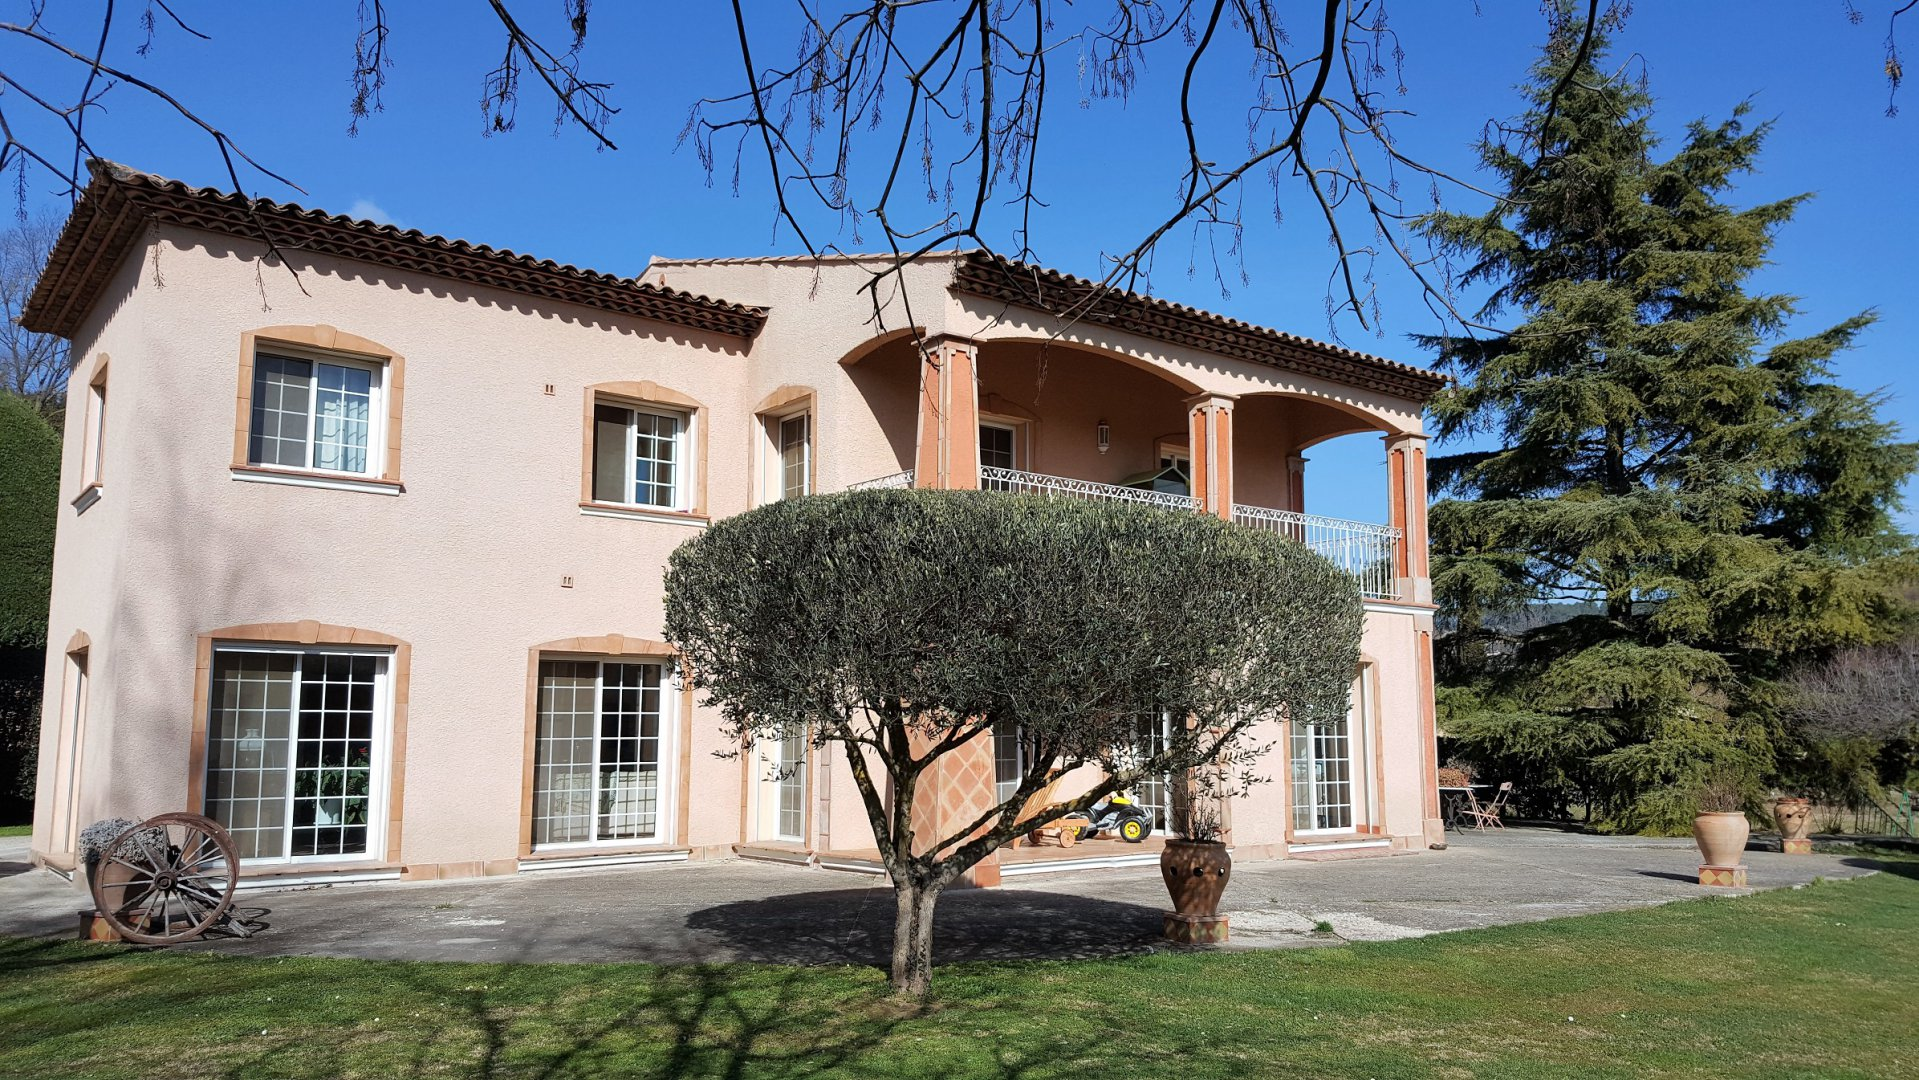 3062. NICE Provençal Property 205 m² on a fenced land of 6794 m² Pool allowed